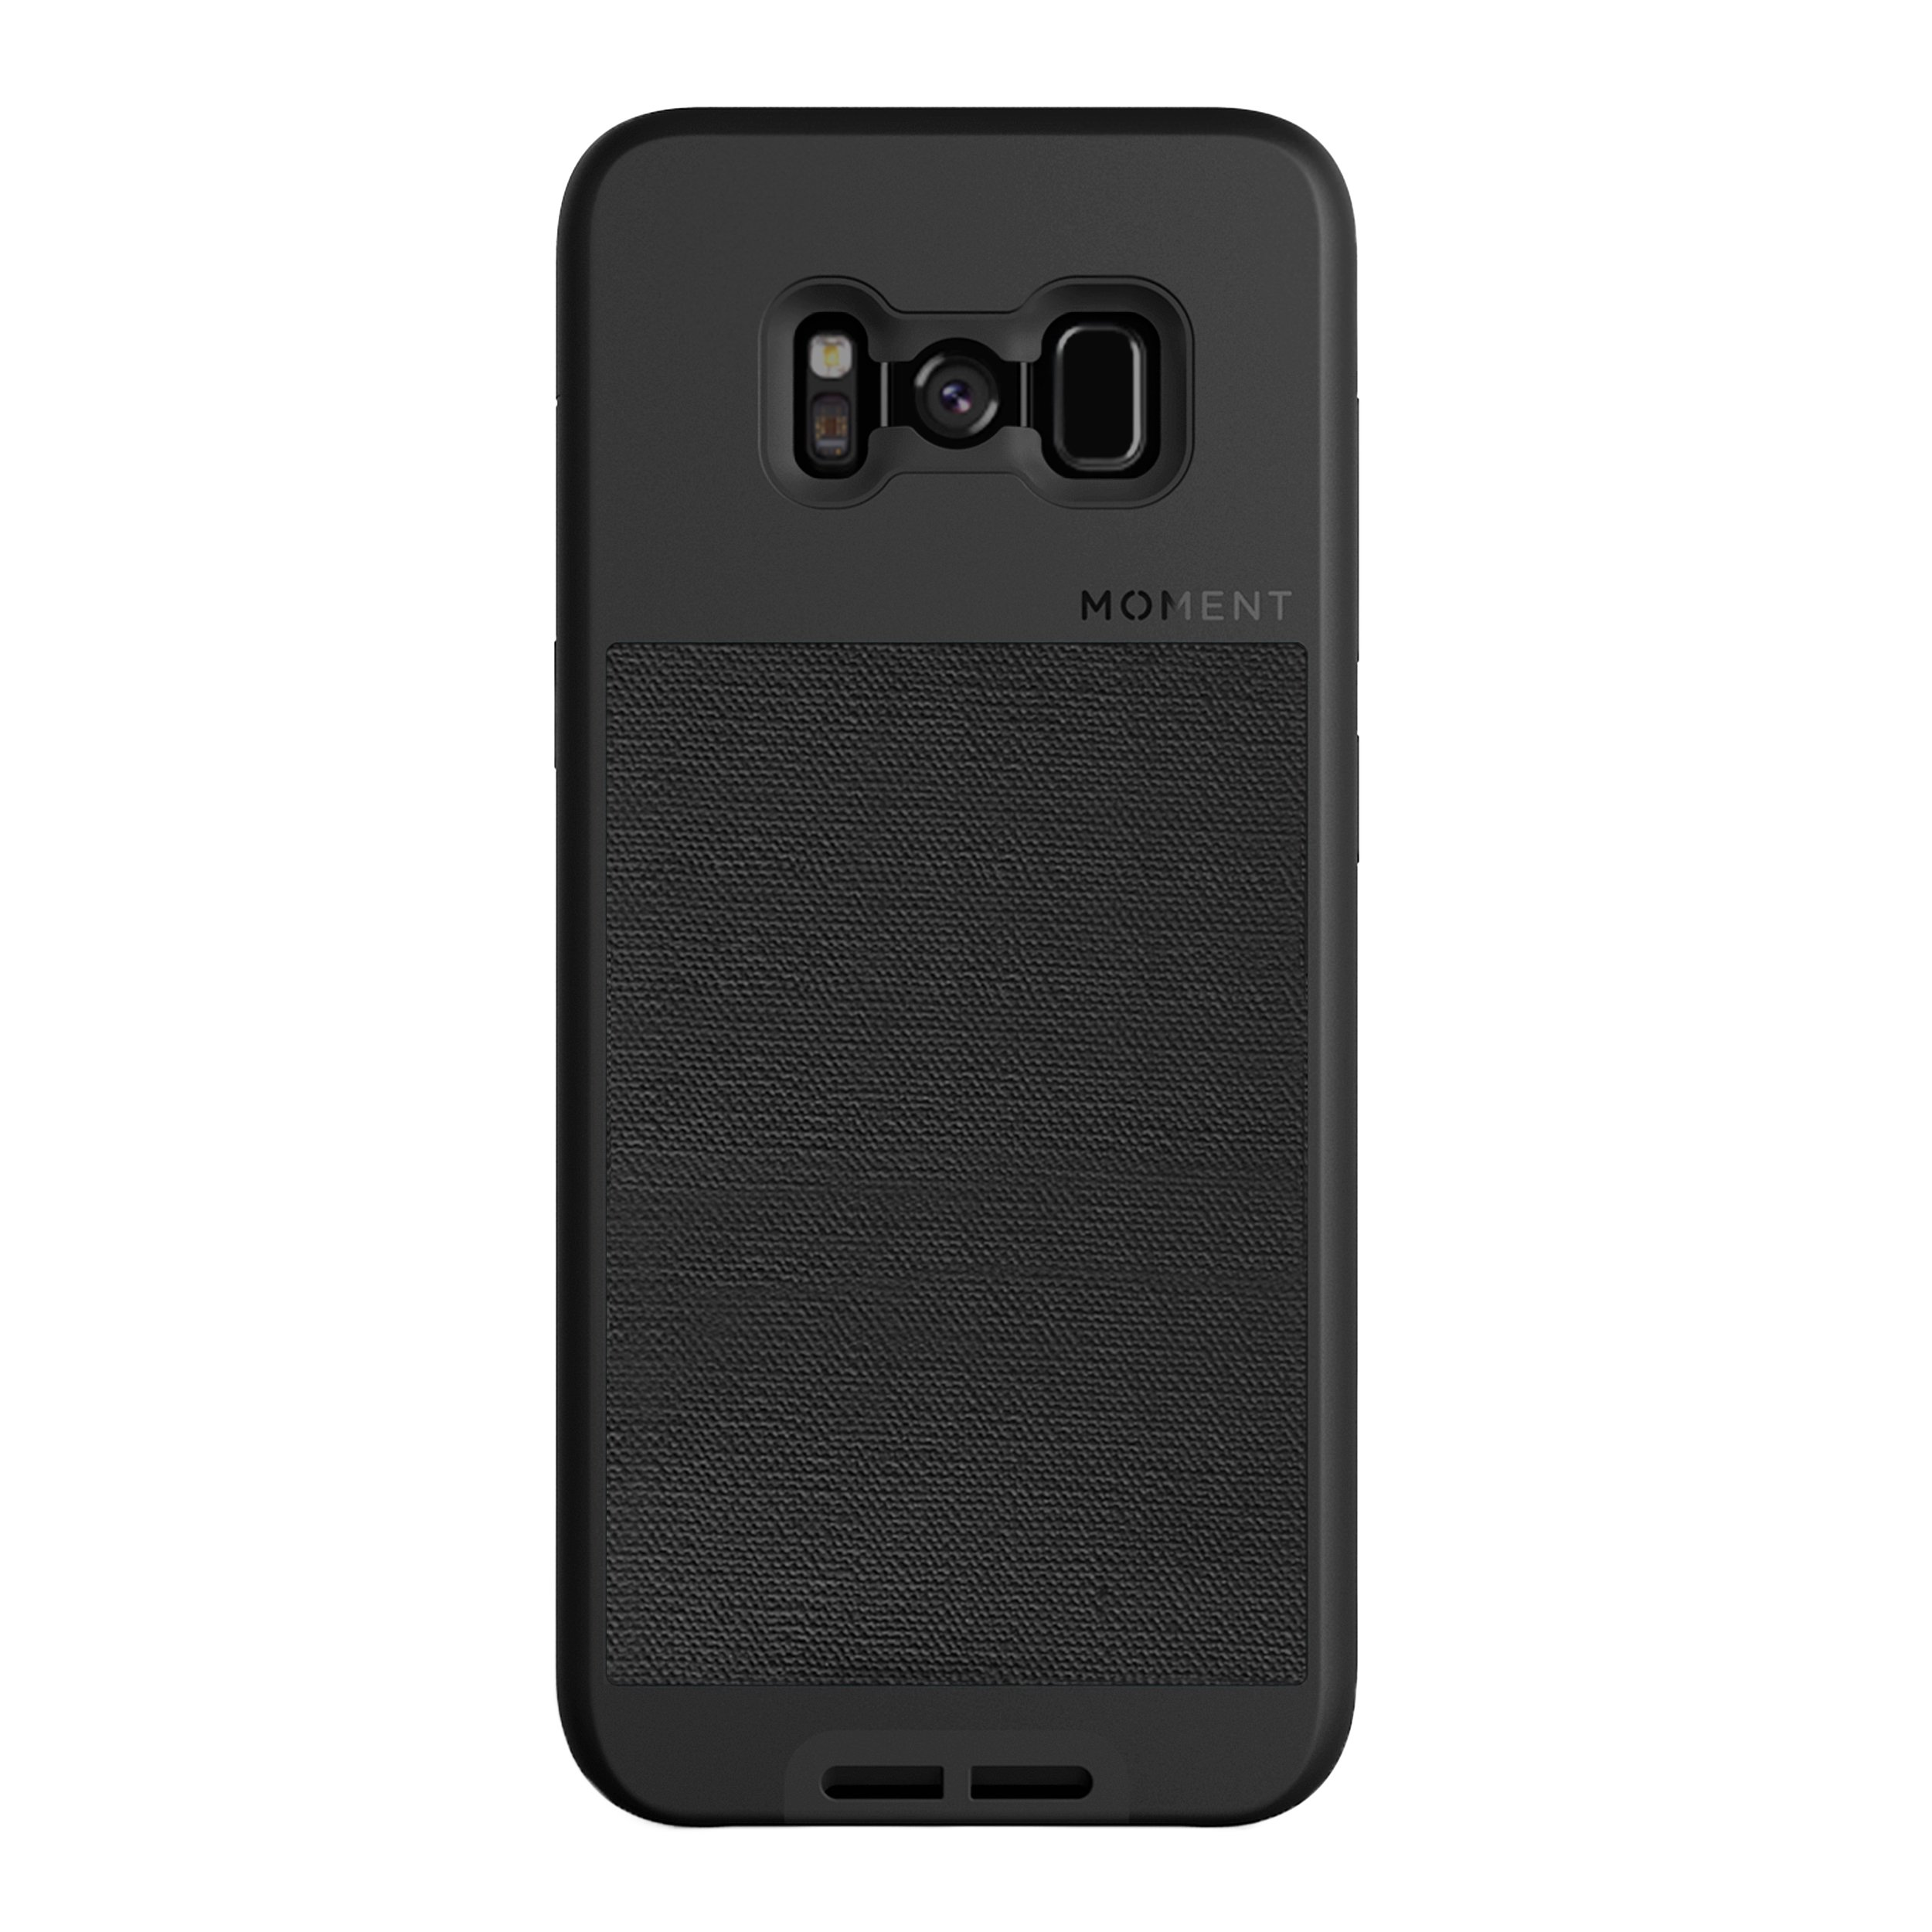 ویکالا · خرید  اصل اورجینال · خرید از آمازون · Galaxy S8+ Case || Moment Photo Case in Black Canvas - Thin, Protective, Wrist Strap Friendly case for Camera Lovers. wekala · ویکالا